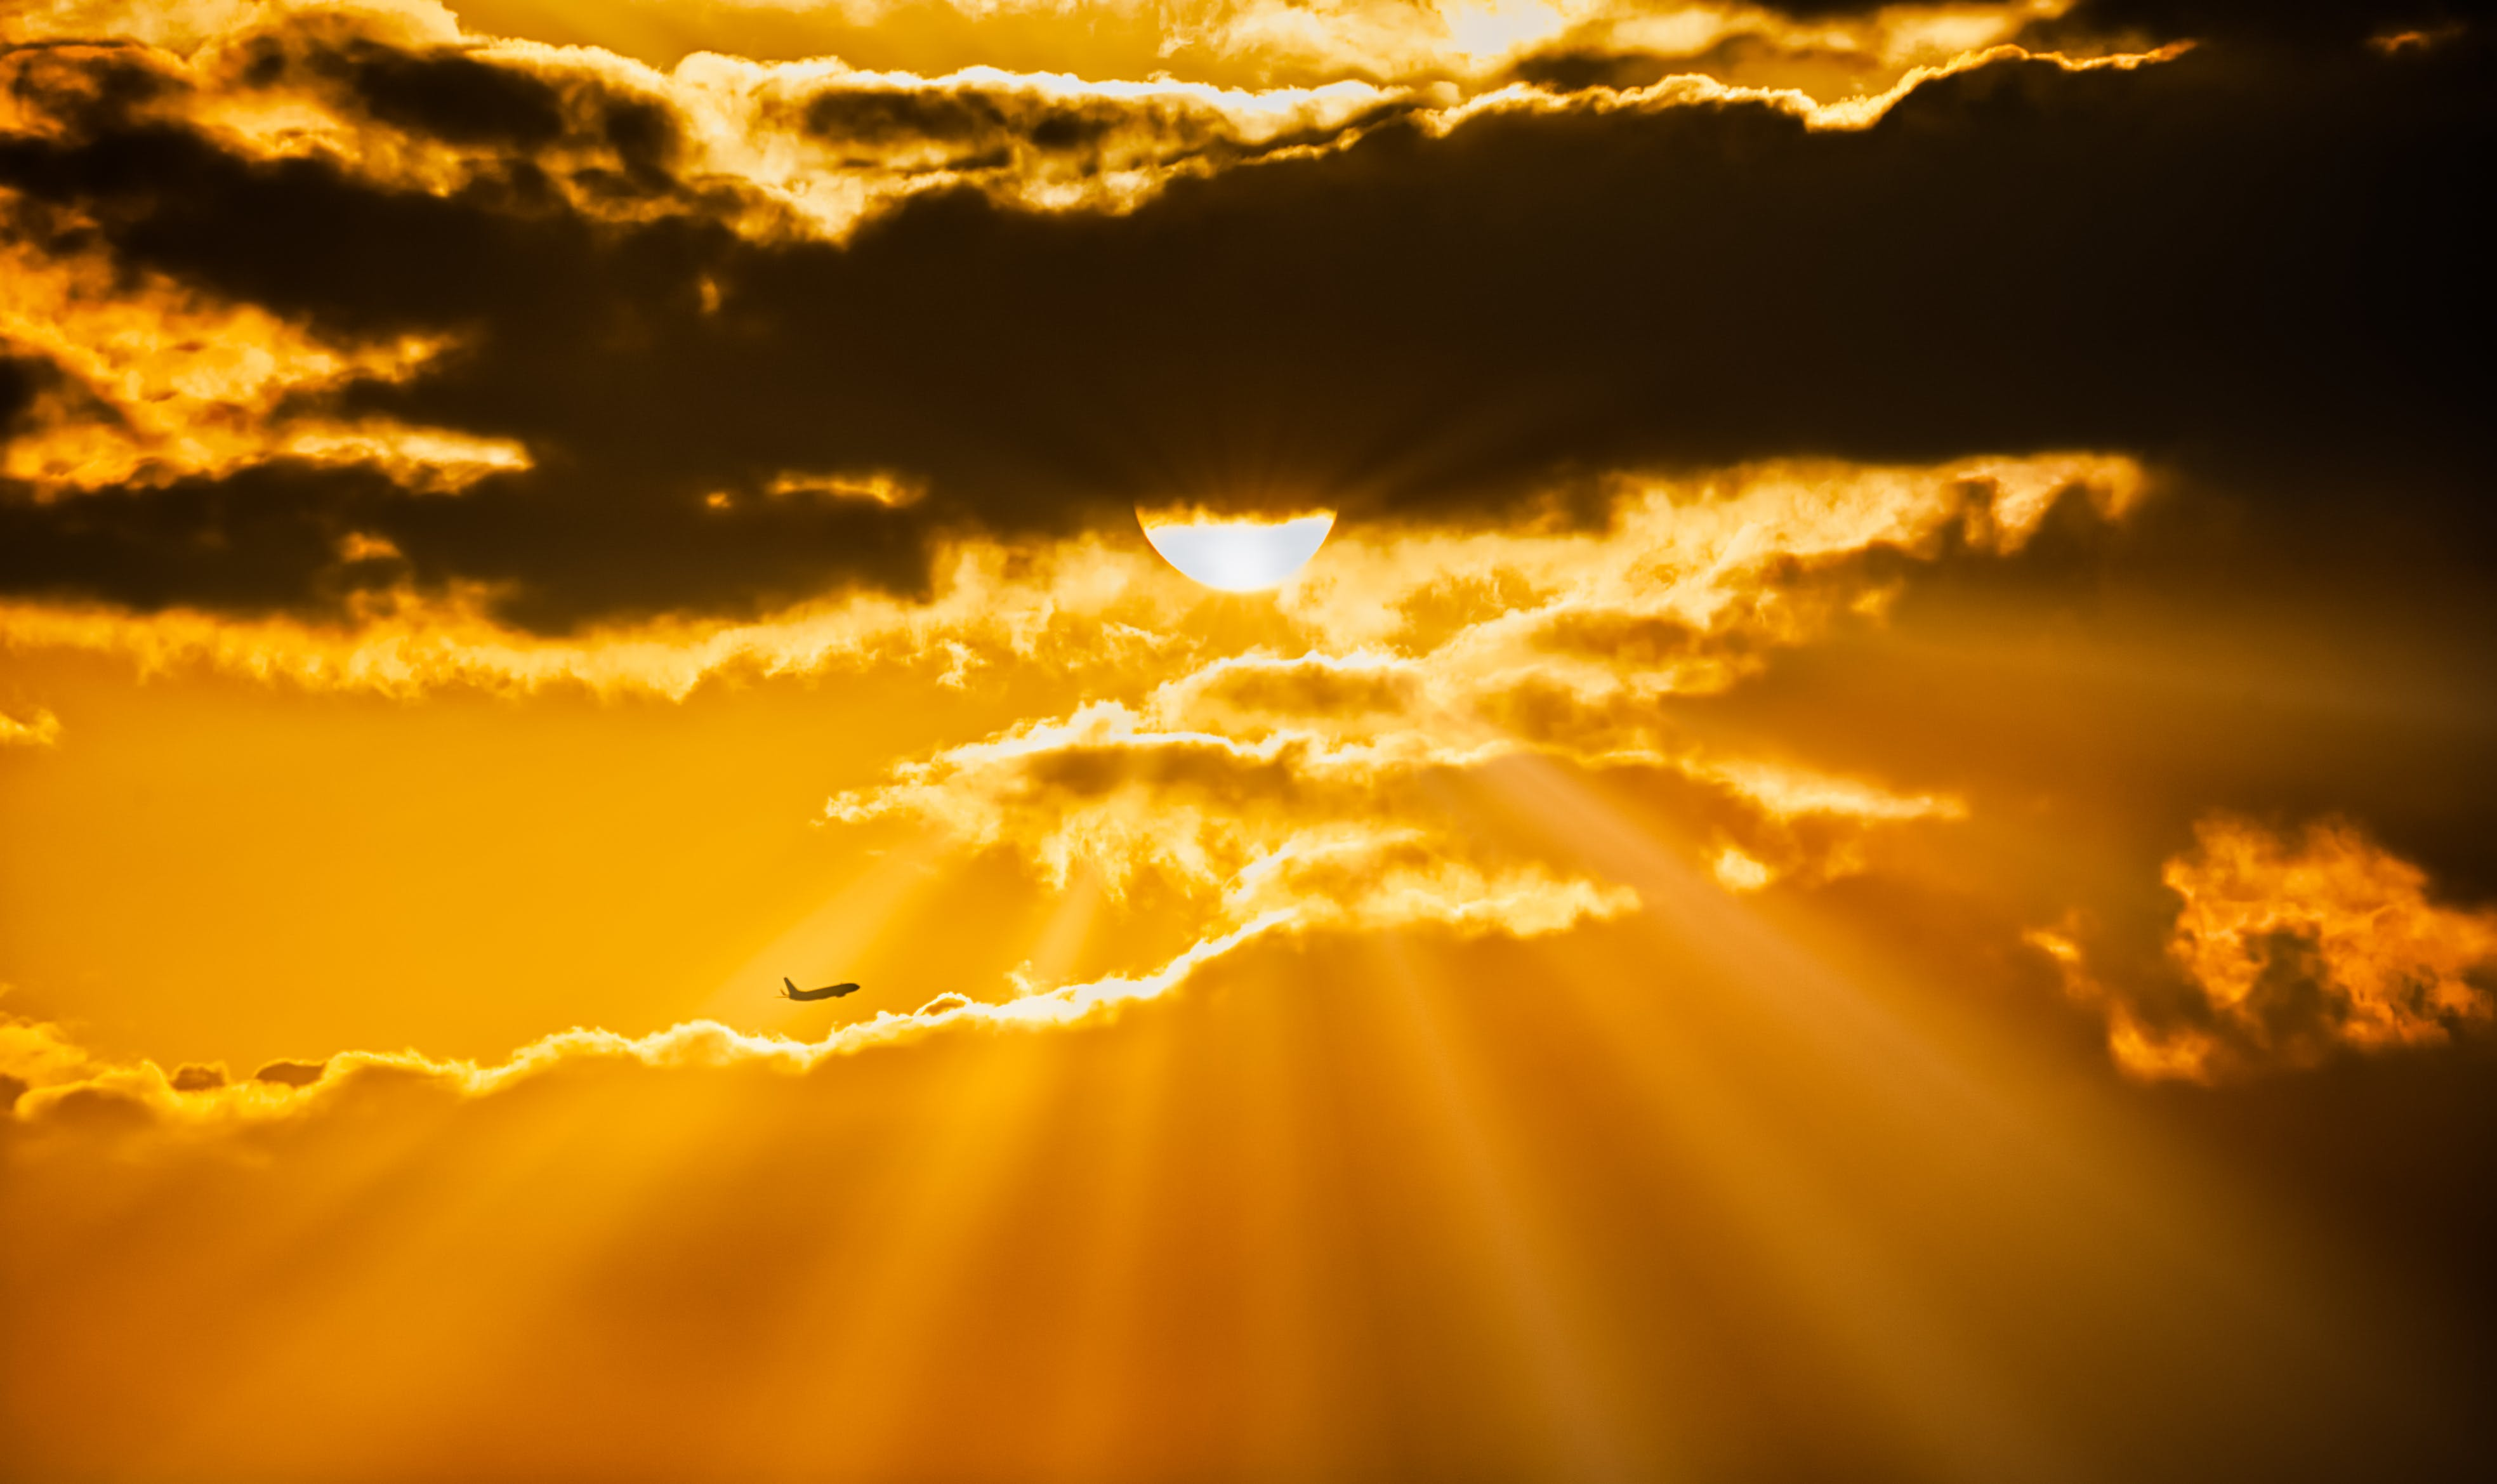 Airplane Flying During Golden Hour